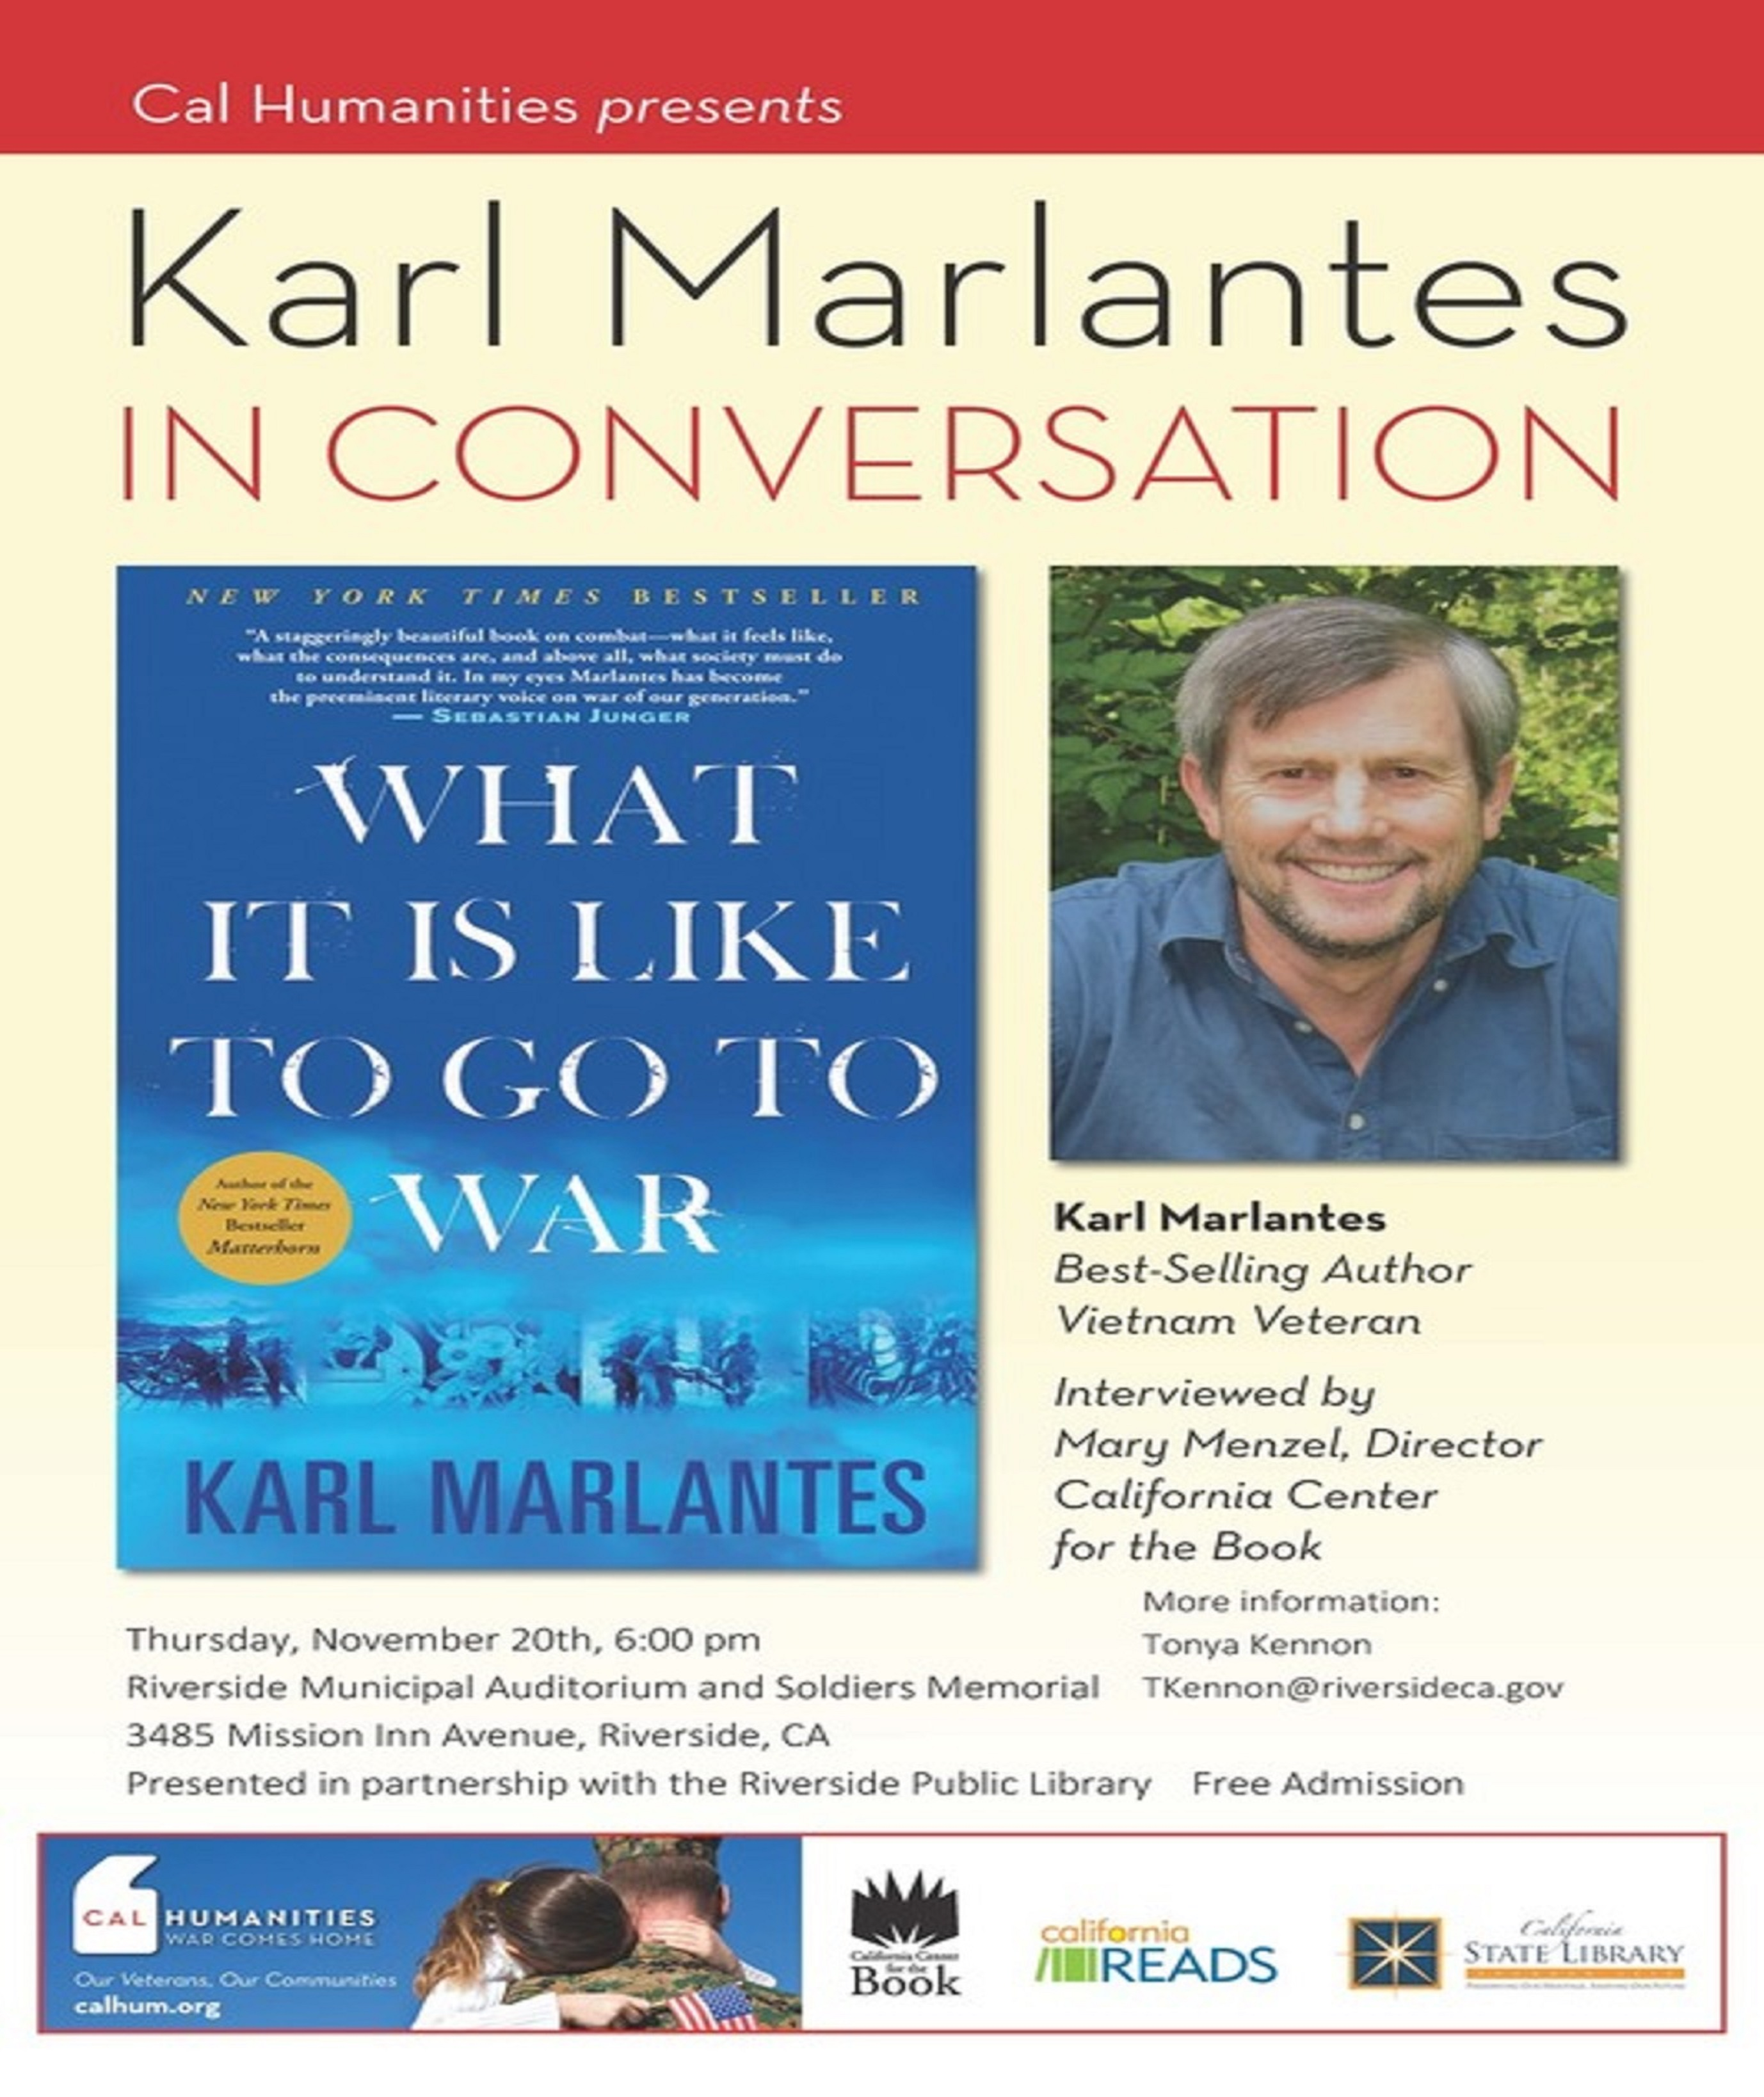 Karl Marlantes, author of What It Is Like to Go to War, to speak in Riverside Nov. 20. Let's start the conversation now!